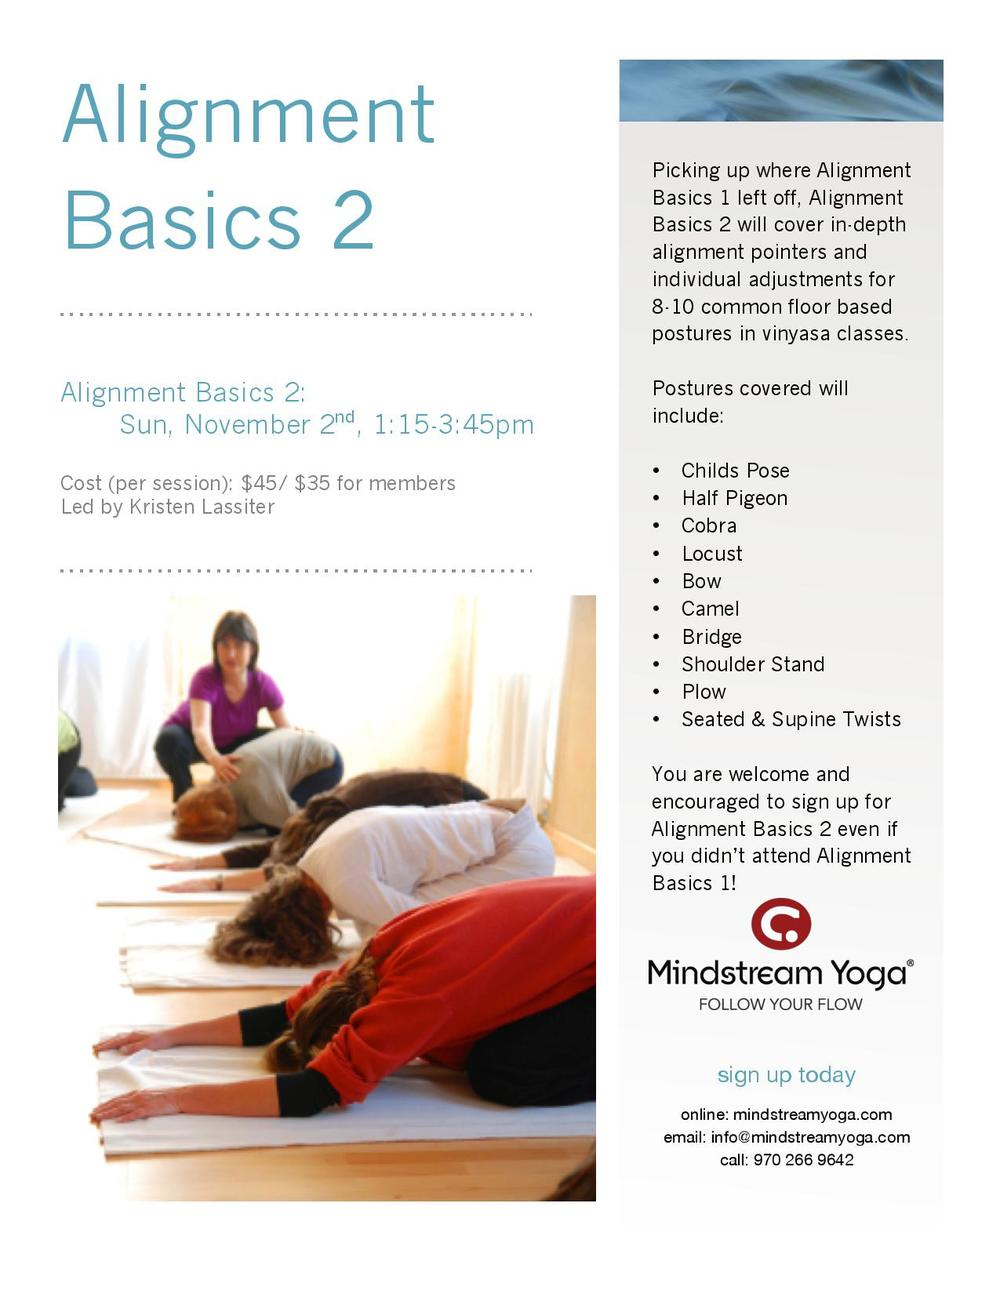 yoga alignment basics 2